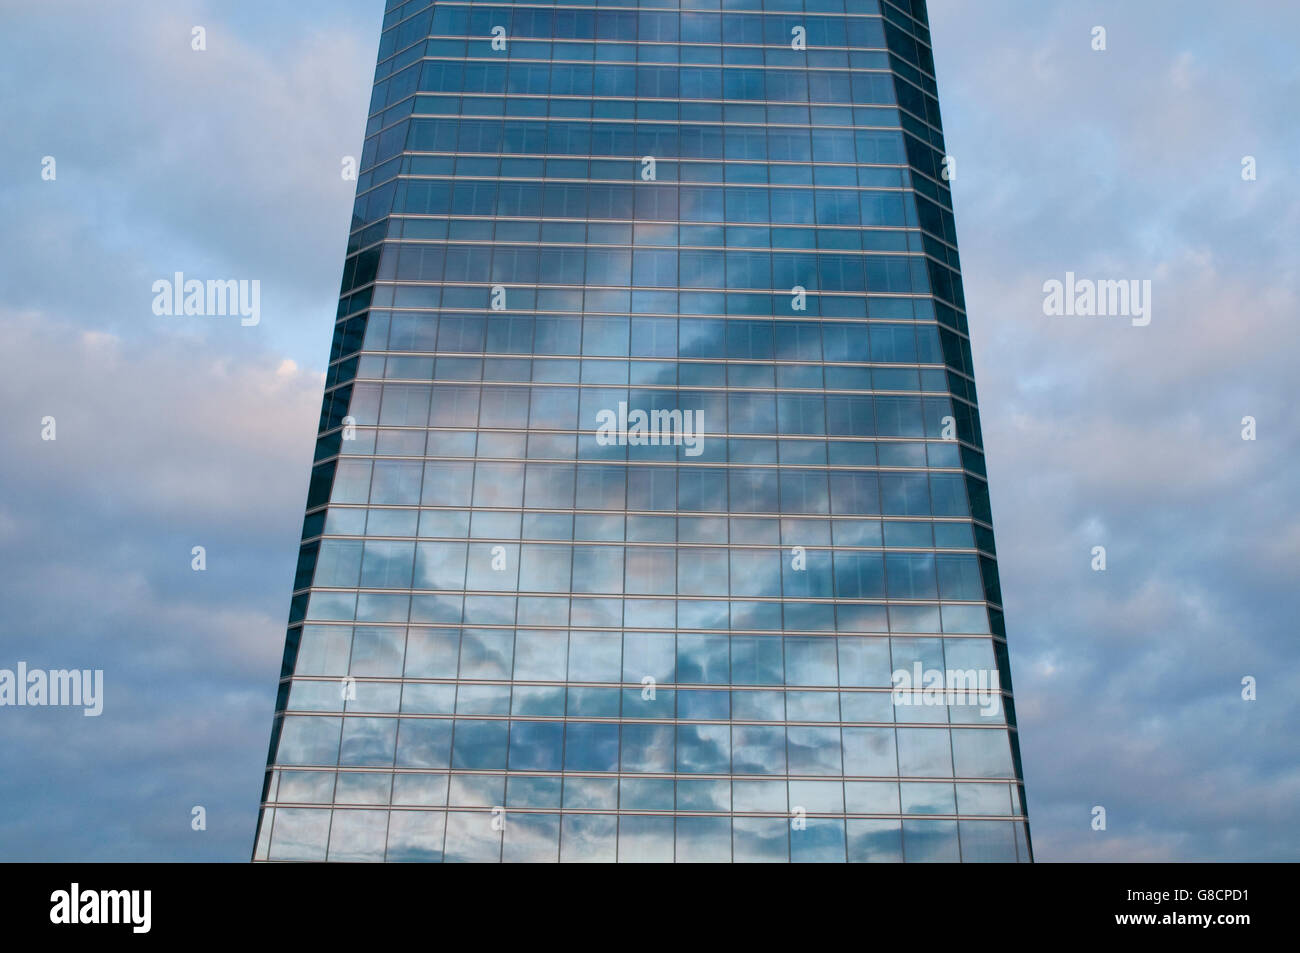 Cloudy sky reflected on Cristal Tower. CTBA, Madrid, Spain. - Stock Image